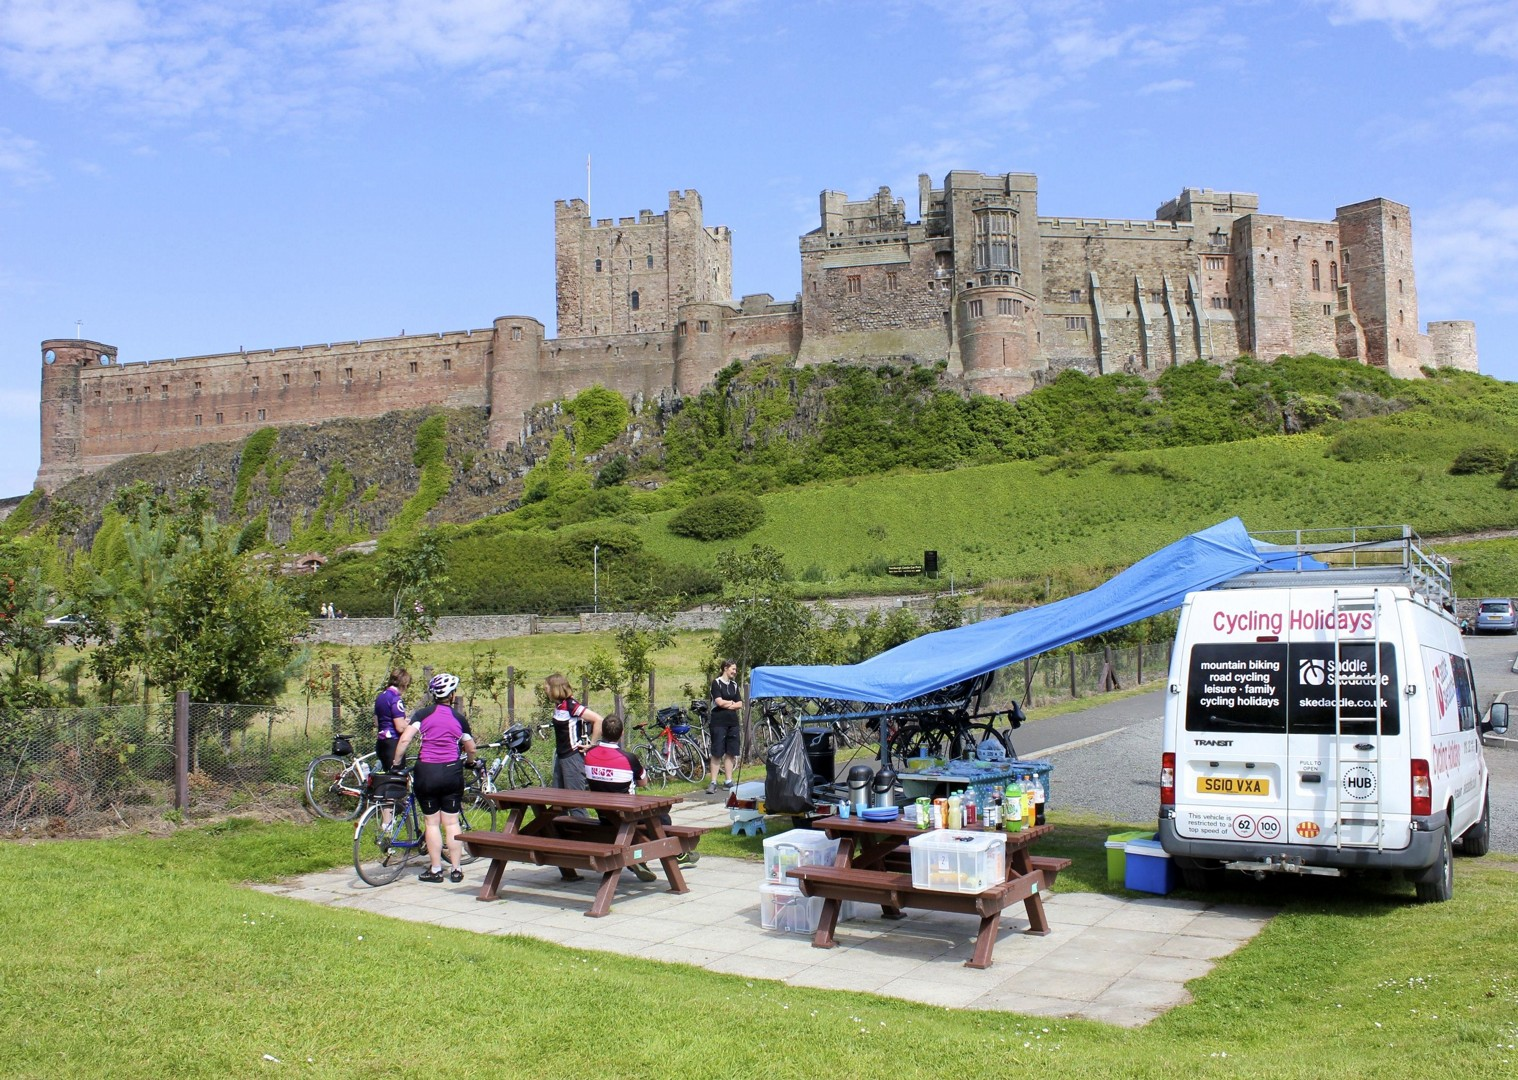 Coast&castles10.jpg - UK - Coast and Castles - Supported Leisure Cycling Holiday - Family Cycling